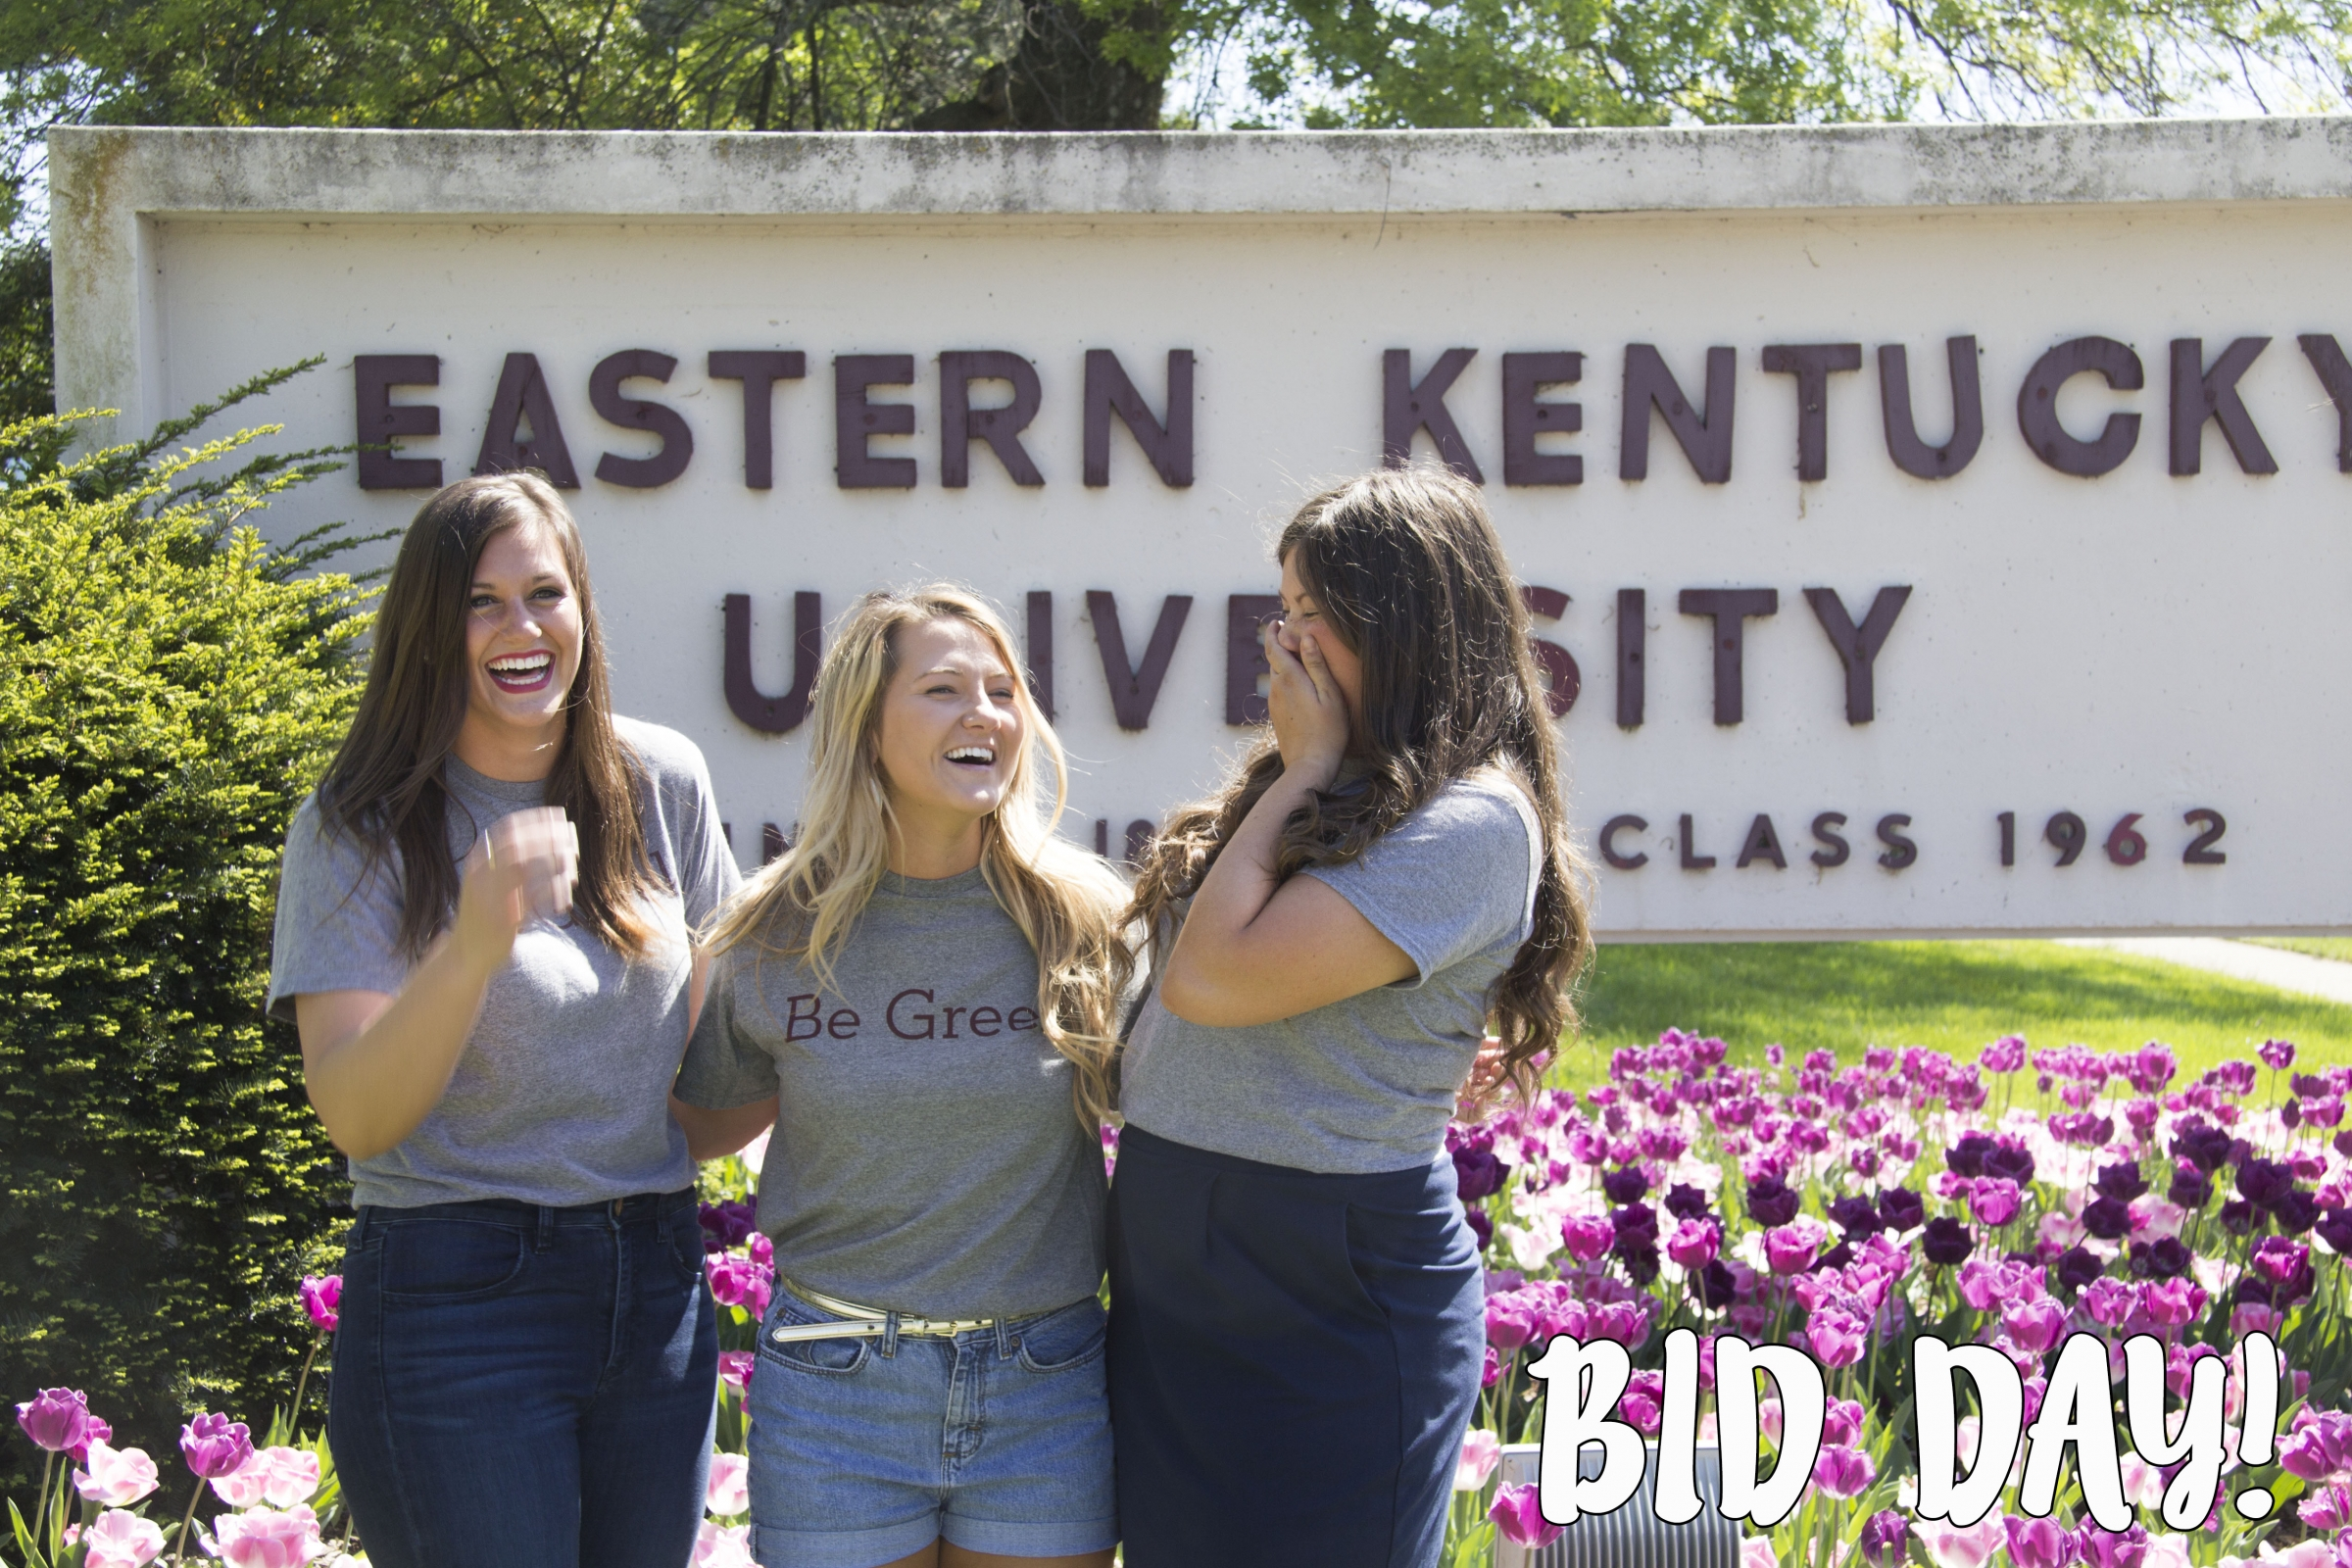 greek life dating site The greek community at the university of new orleans is comprised of a diverse group community service is an essential aspect of greek life.